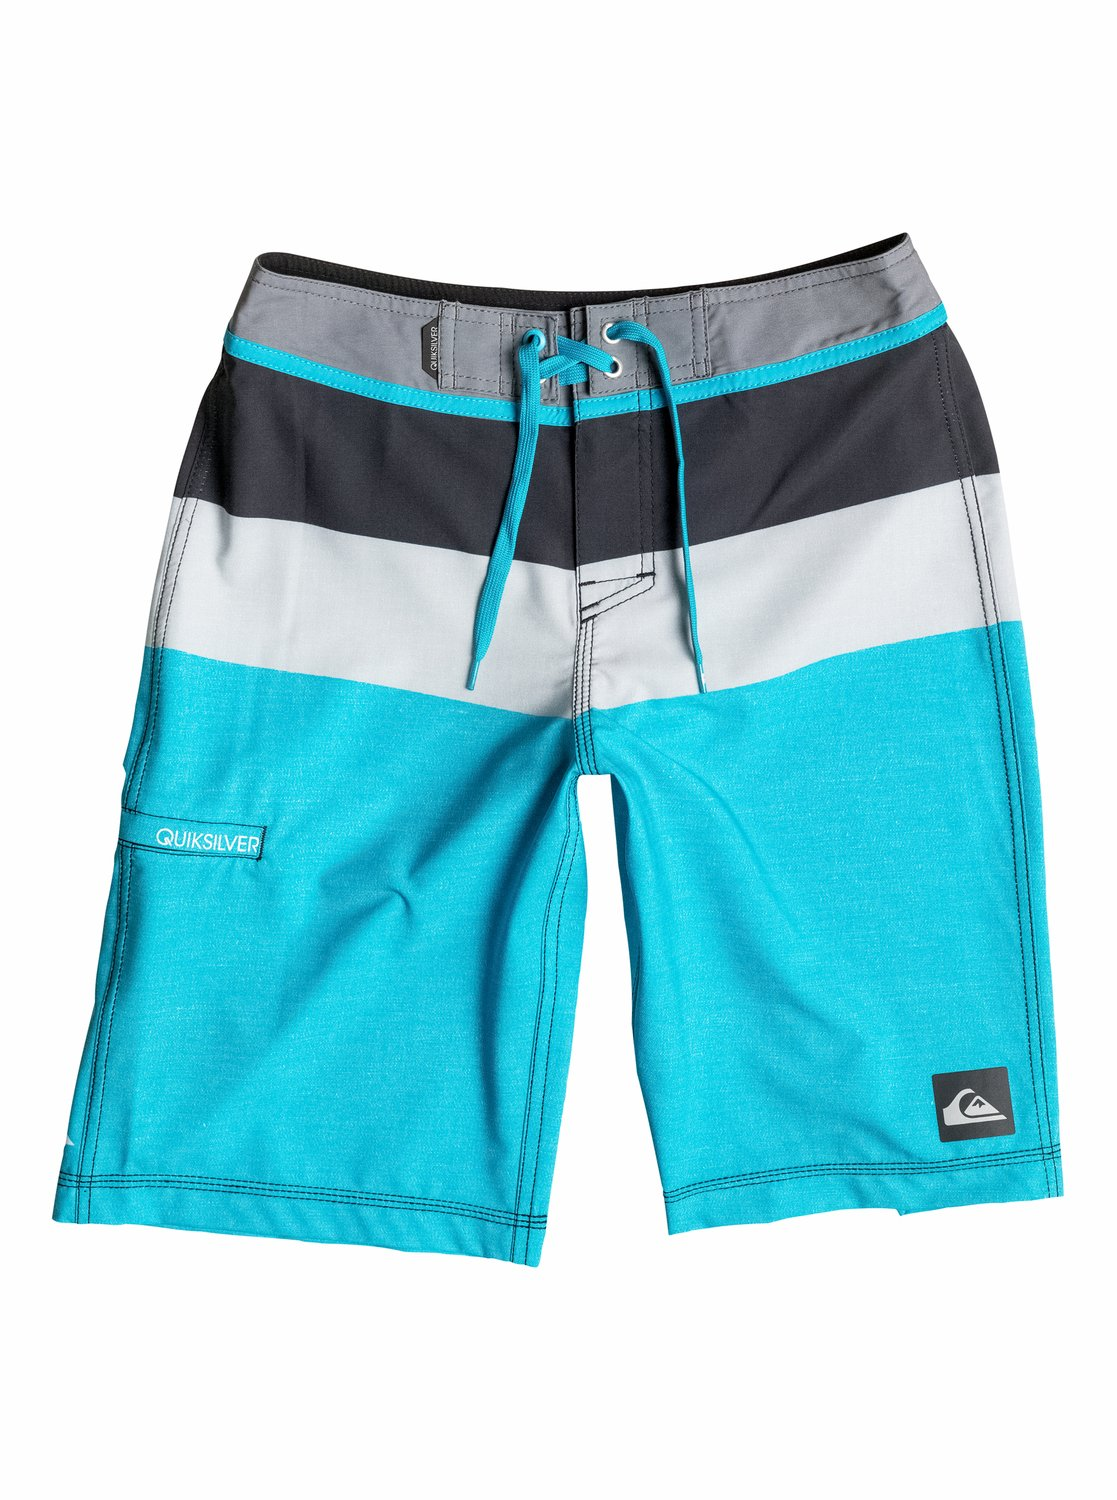 We have board shorts for boys of all ages, from babies to toddlers to teenagers. Find something your boy will love from quality brands devoted to excellence like Billabong, Quiksilver, Rip Curl and Volcom.